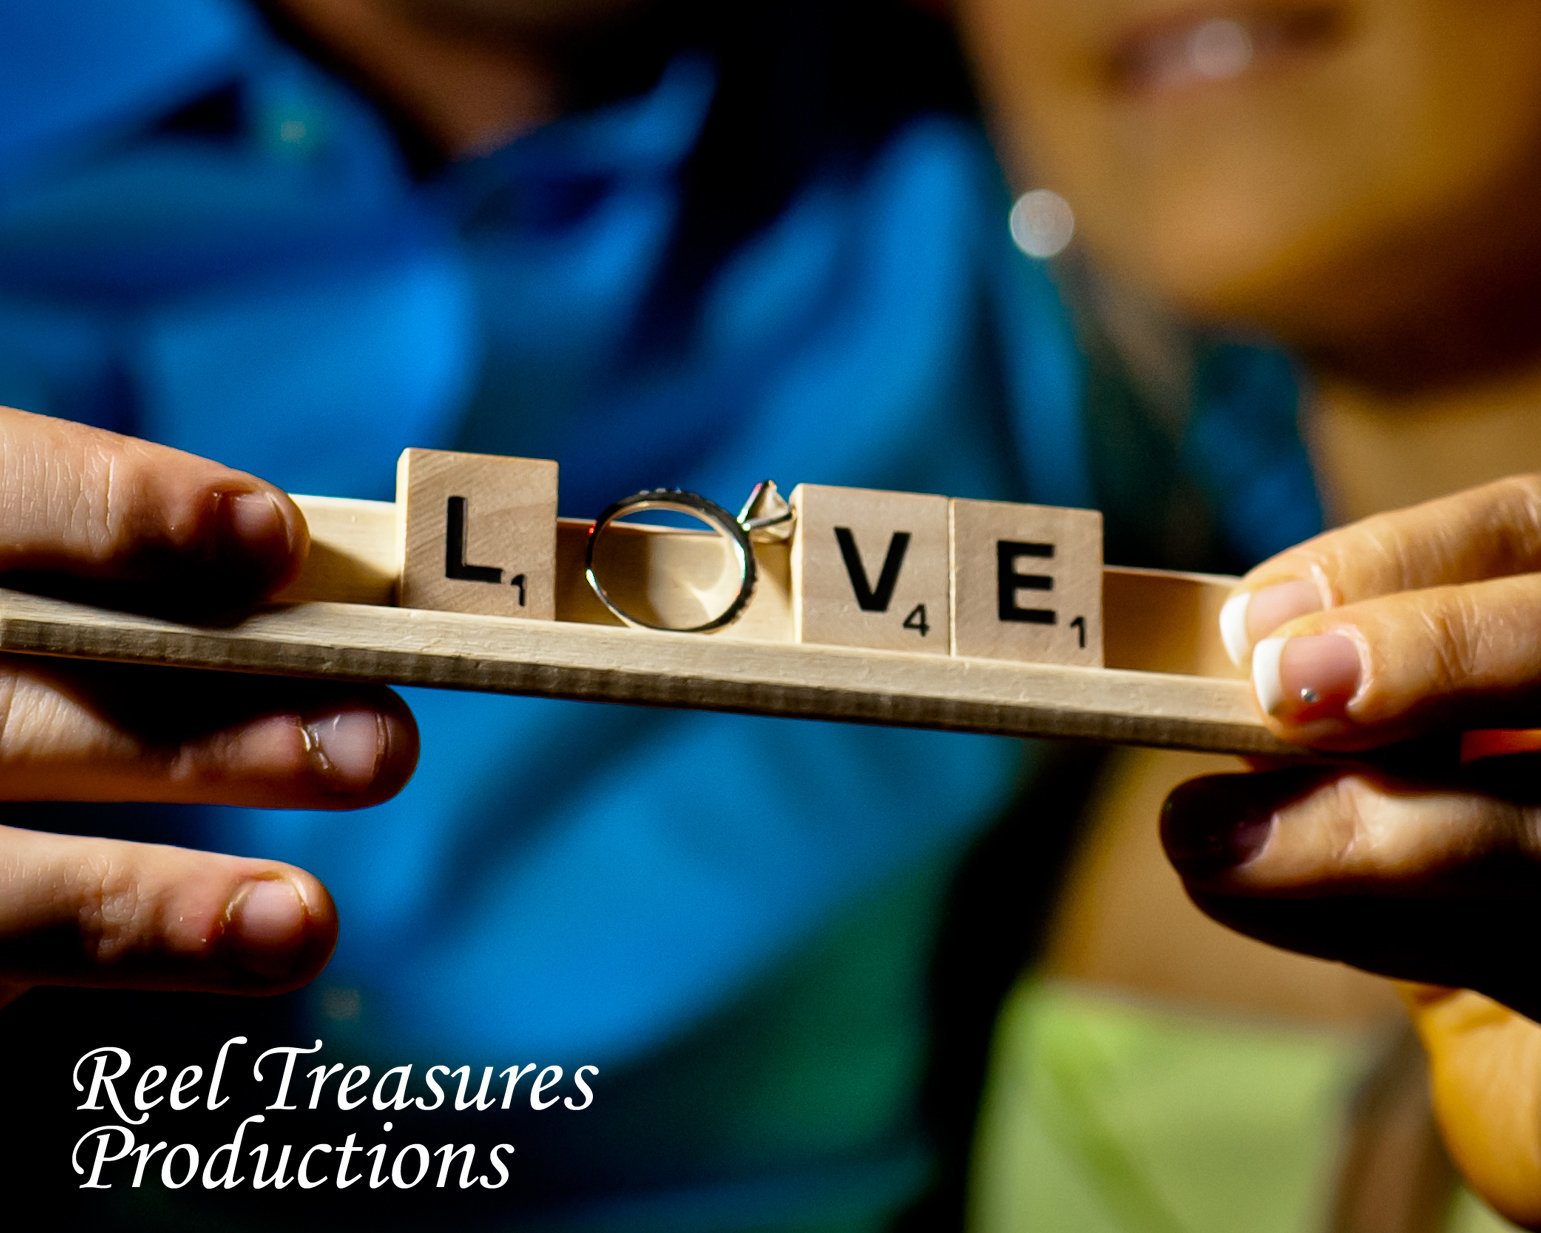 Reel Treasures Productions Engagement Shoot in Fort Myers FL.